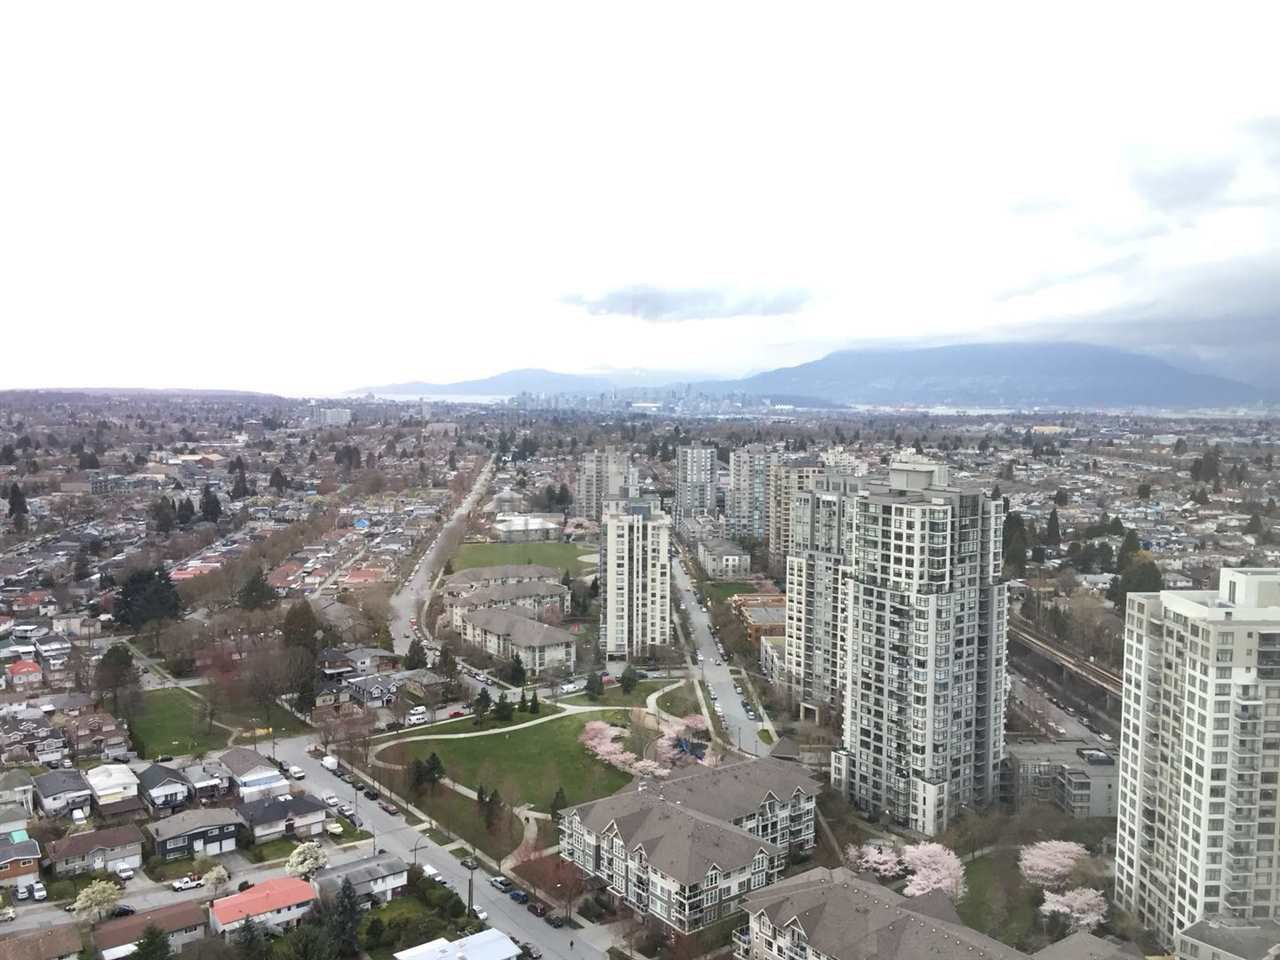 Main Photo: 3601 5665 BOUNDARY ROAD in Vancouver: Collingwood VE Condo for sale (Vancouver East)  : MLS®# R2253723